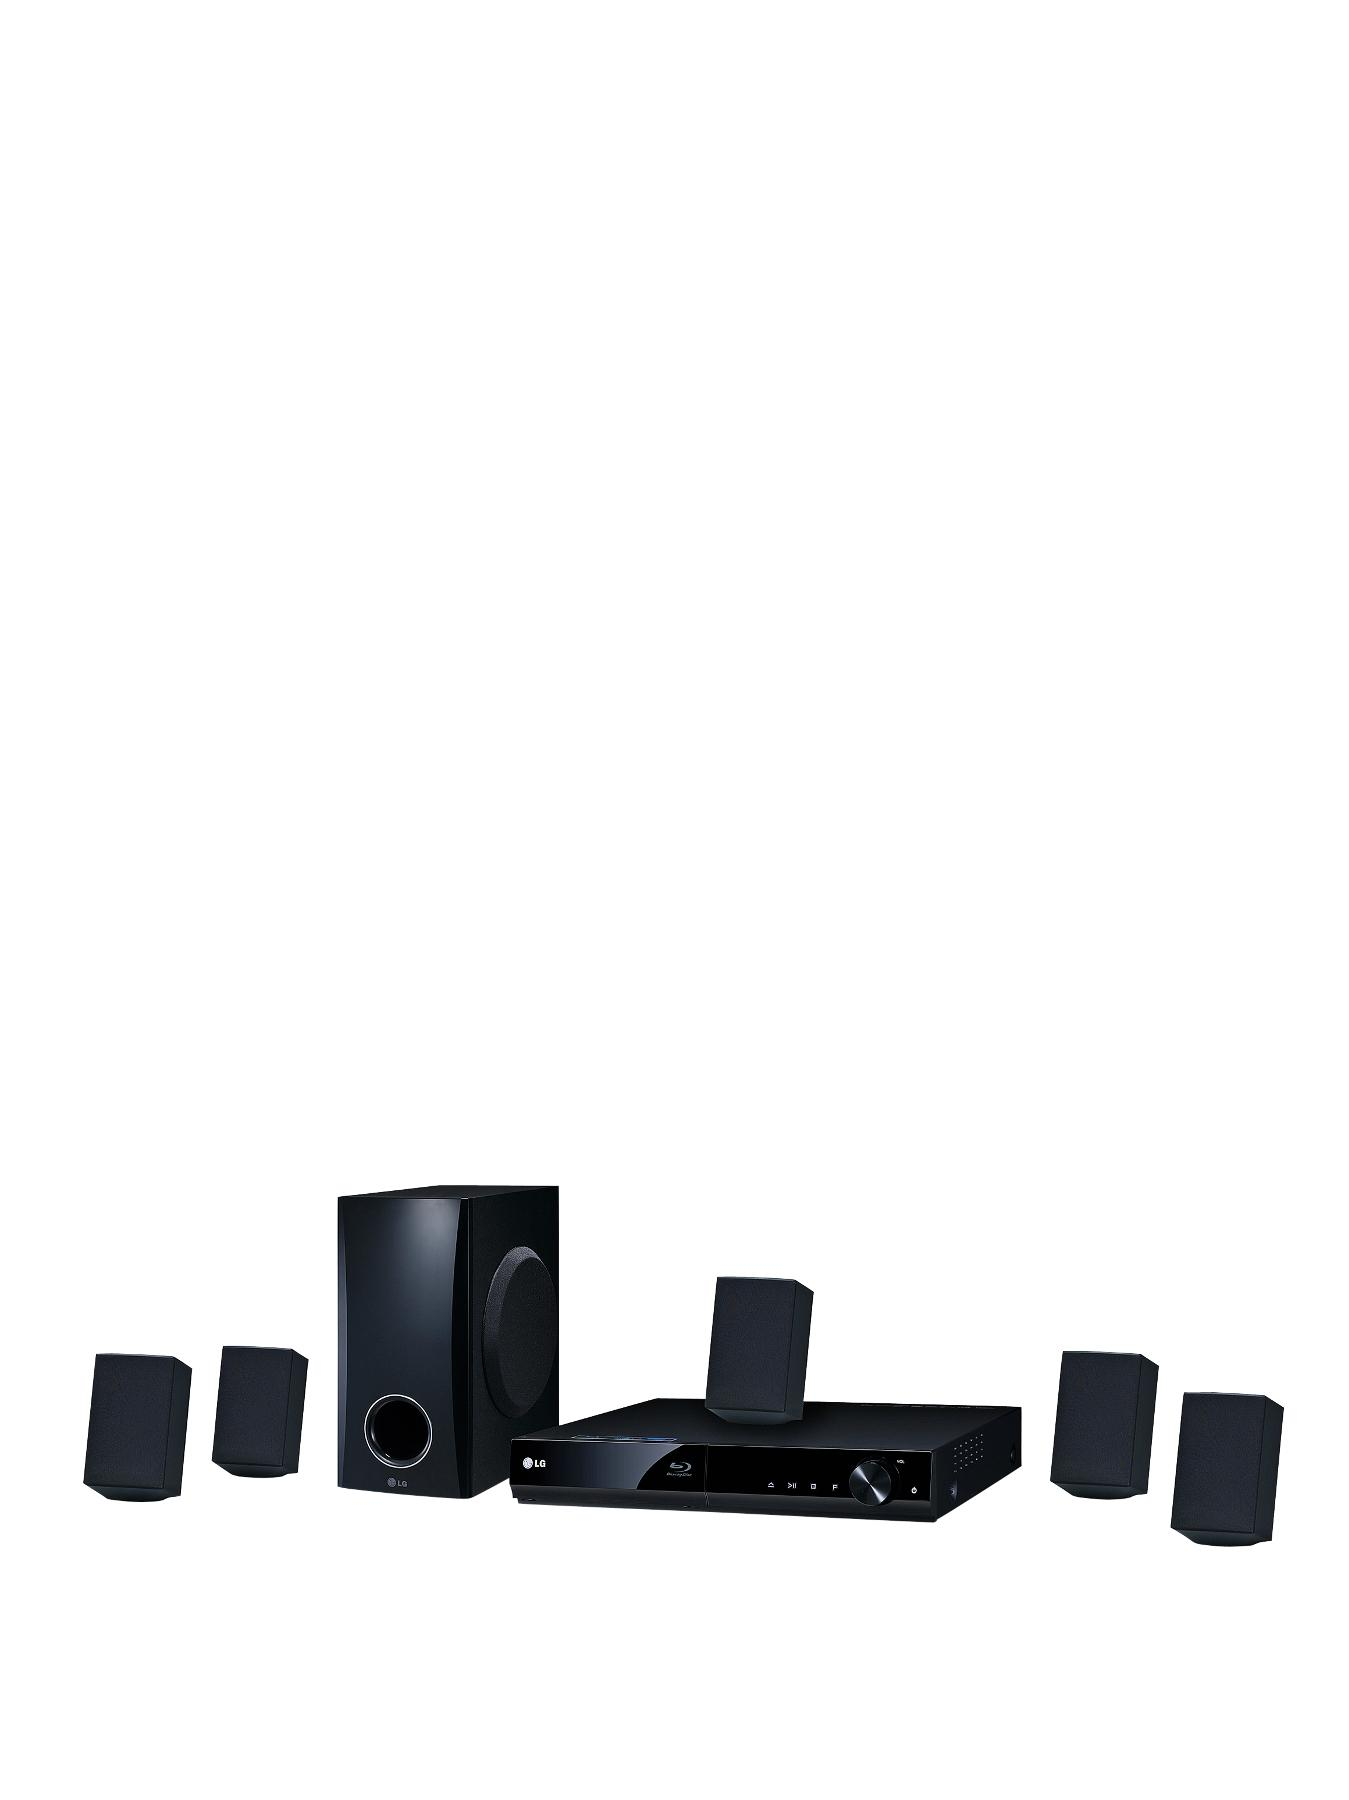 LG BH4030S Blu-ray Home Theatre System